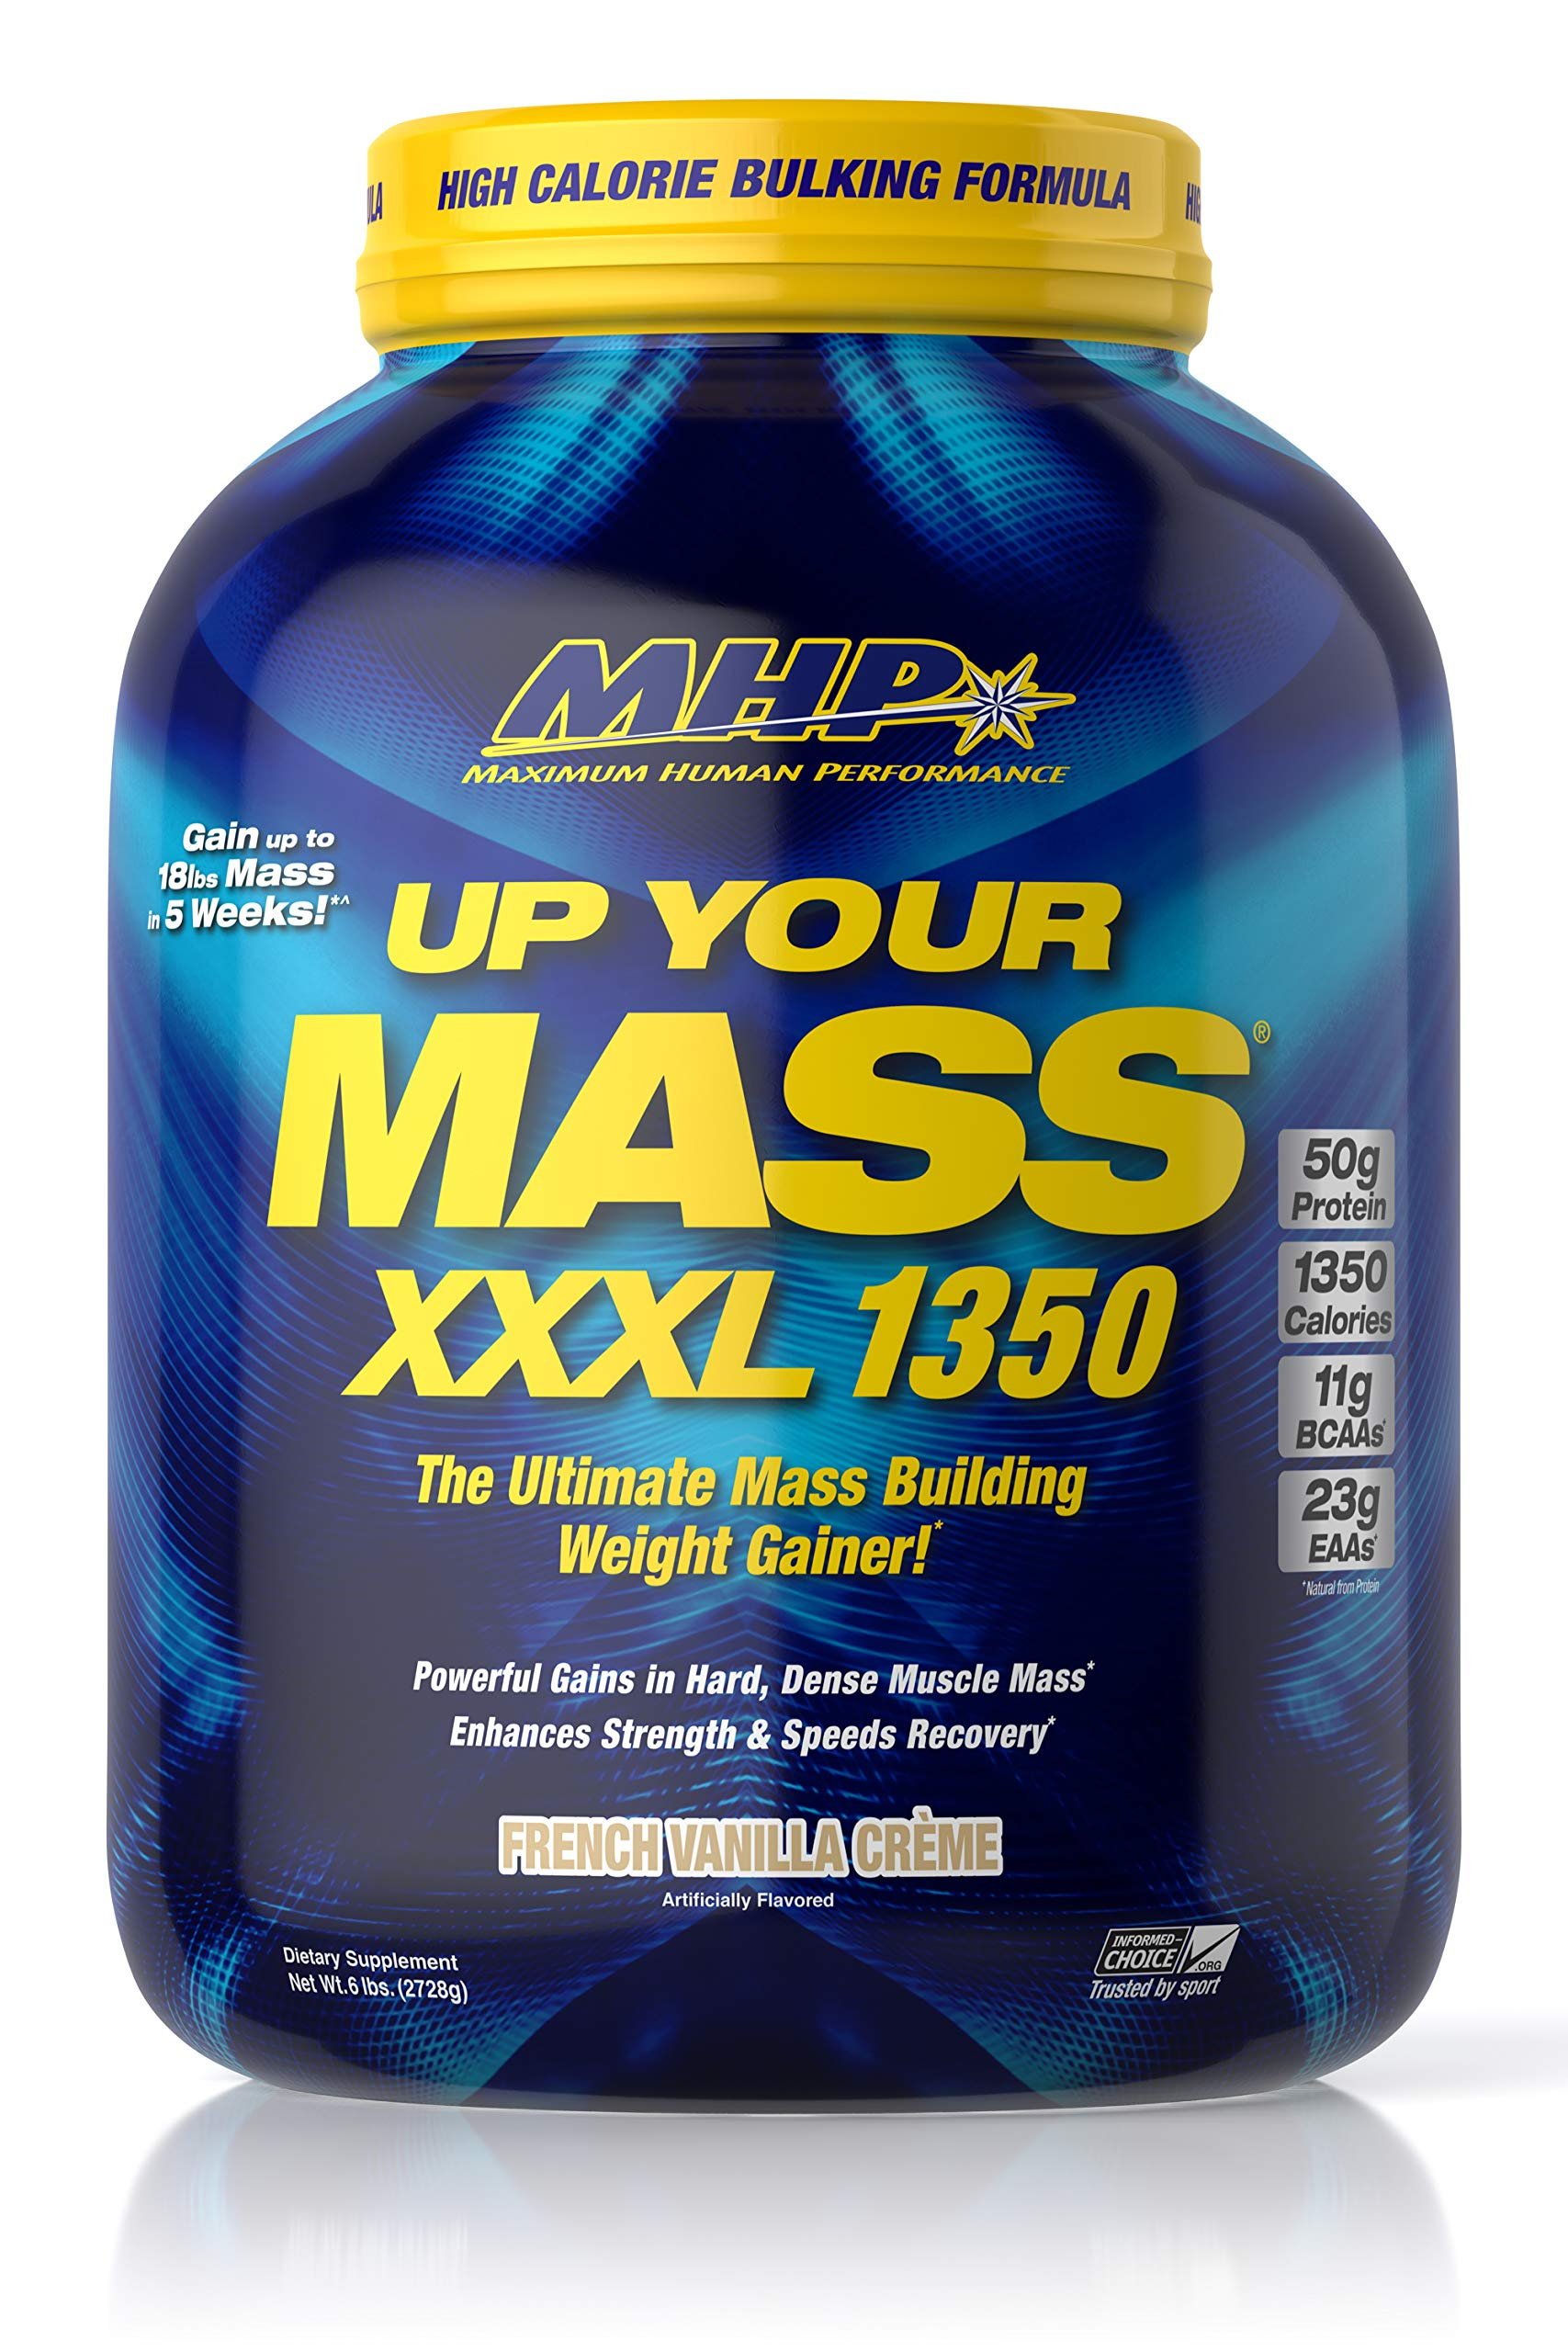 MHP UYM XXXL 1350 Mass Building Weight Gainer, Muscle Mass Gains, w/50g Protein, High Calories, 11g BCAAs, Leucine, French Vanilla Creme, 8 Servings